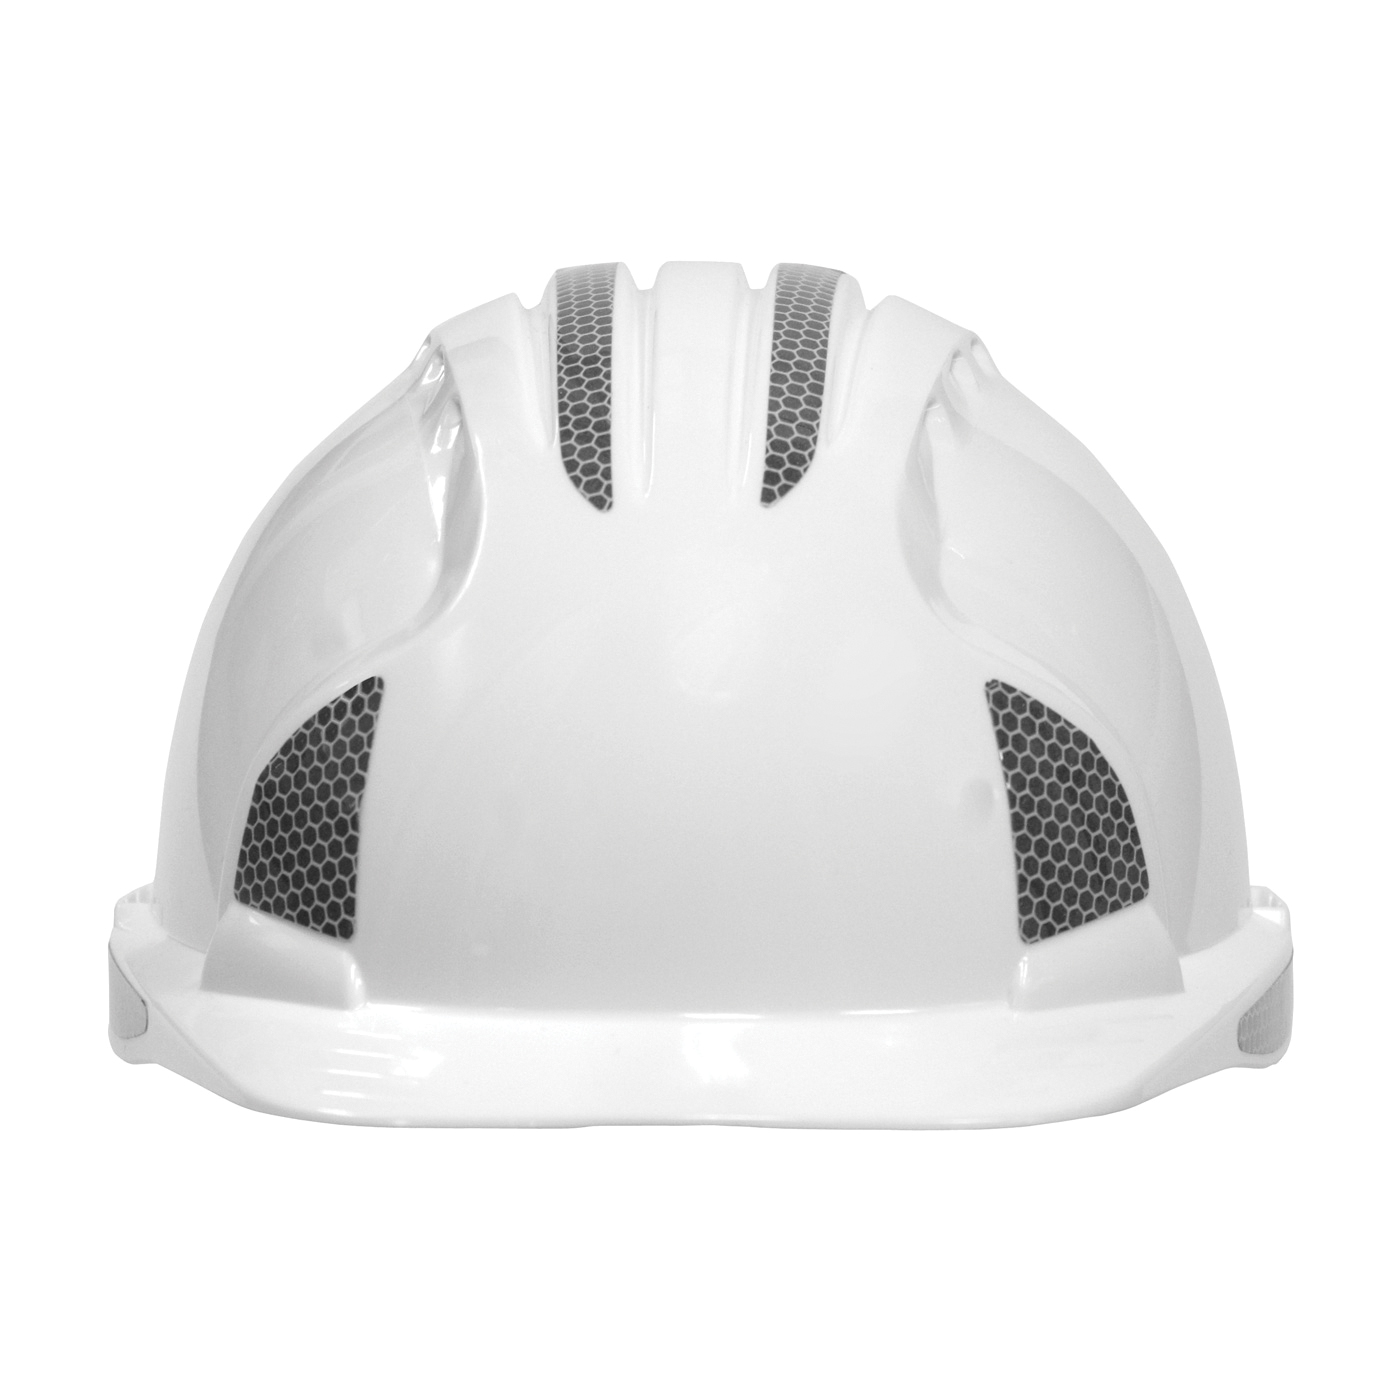 JSP® 280-AHS-SUSP Replacement Suspension, 6 Suspension Points, For Use With MK8 Evolution® Hard Hats, Polyester